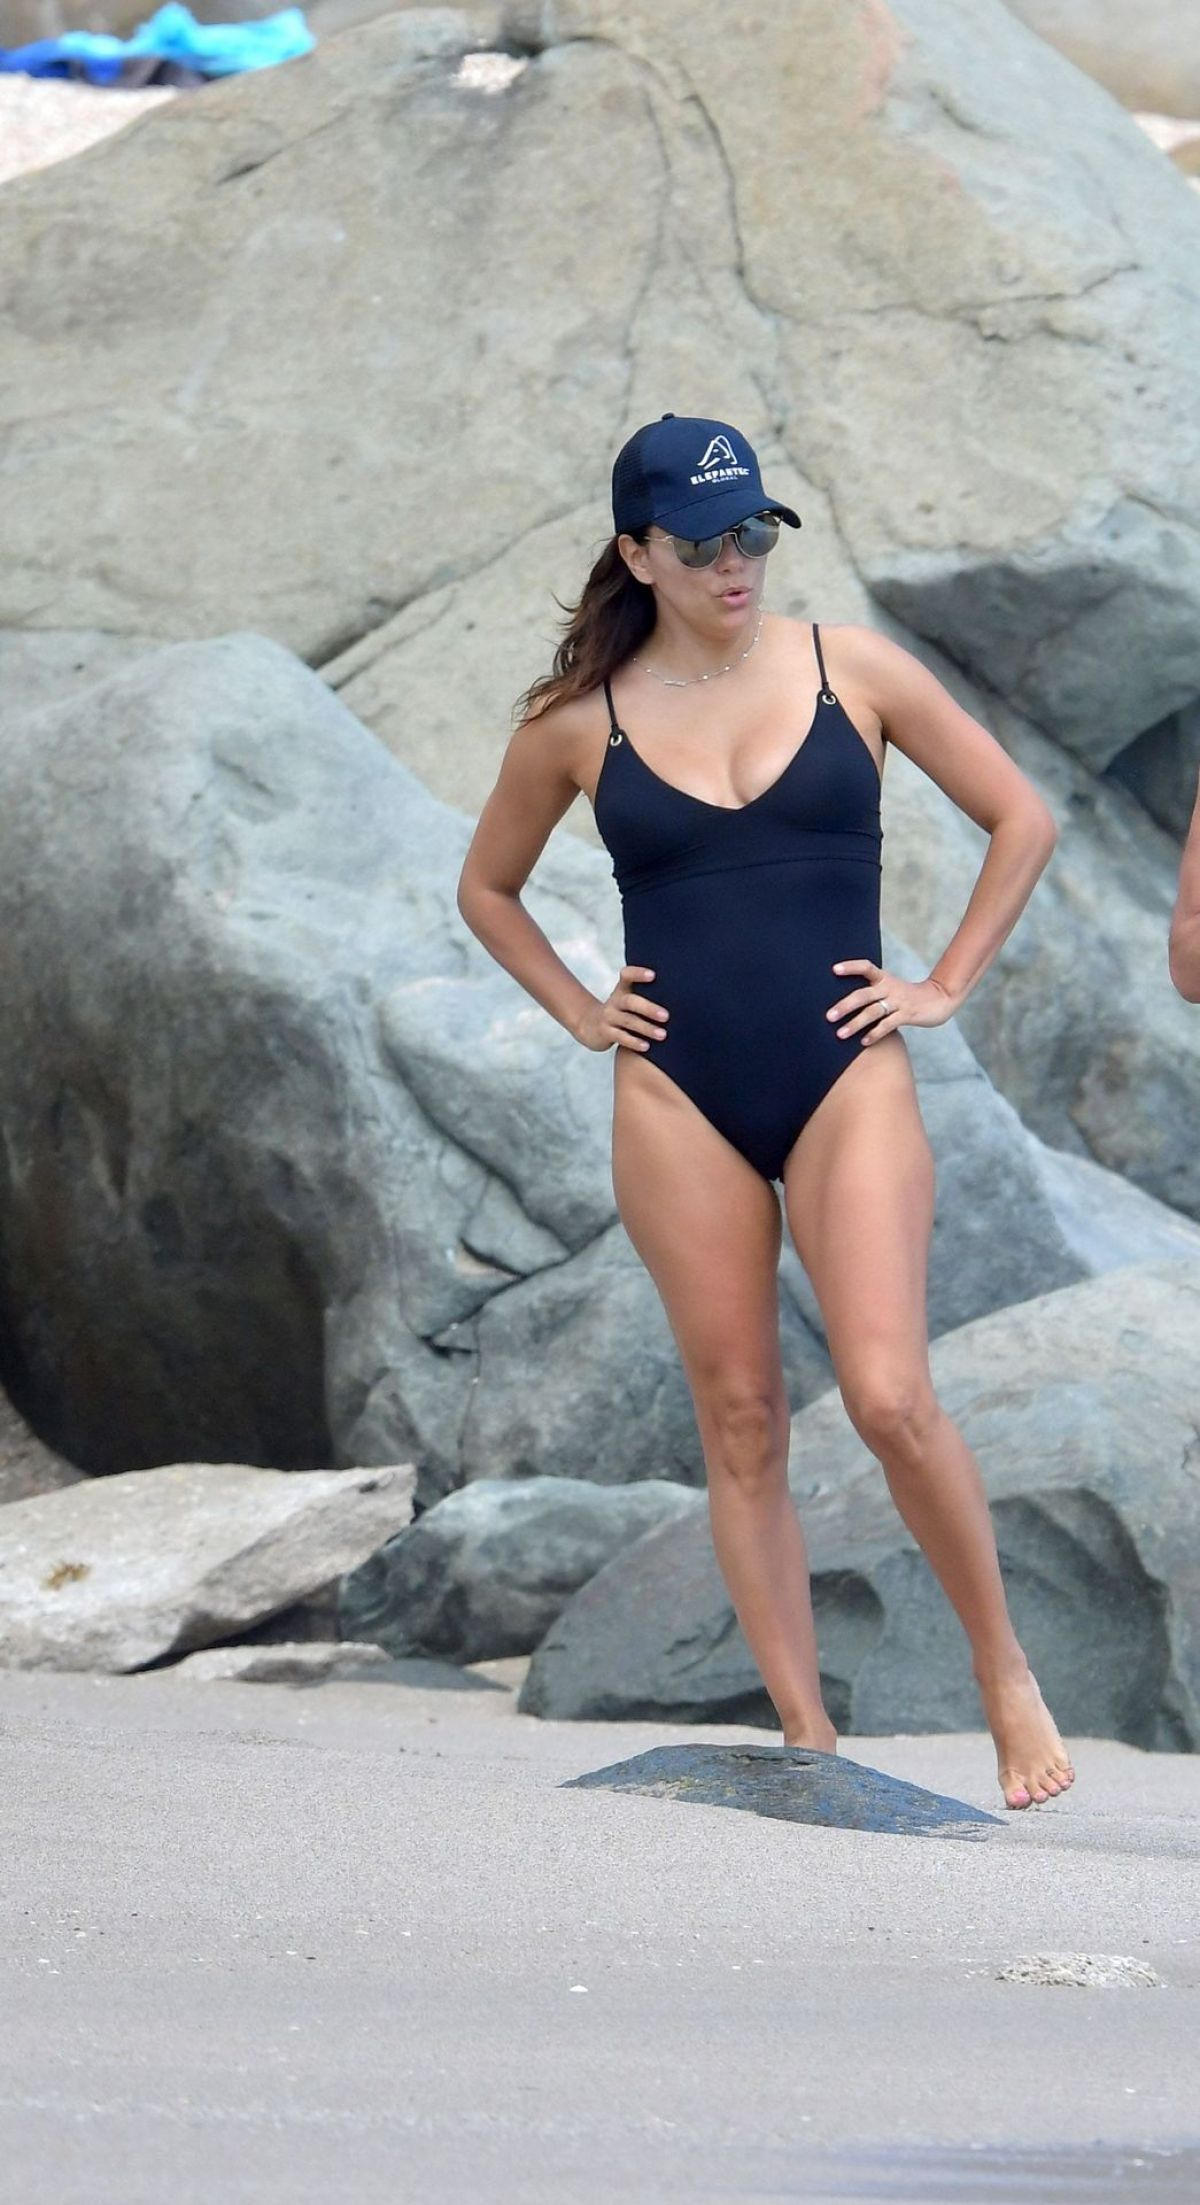 Swimsuit Longoria Beach Eva In St 04232019 At A Barts 7bYf6gy